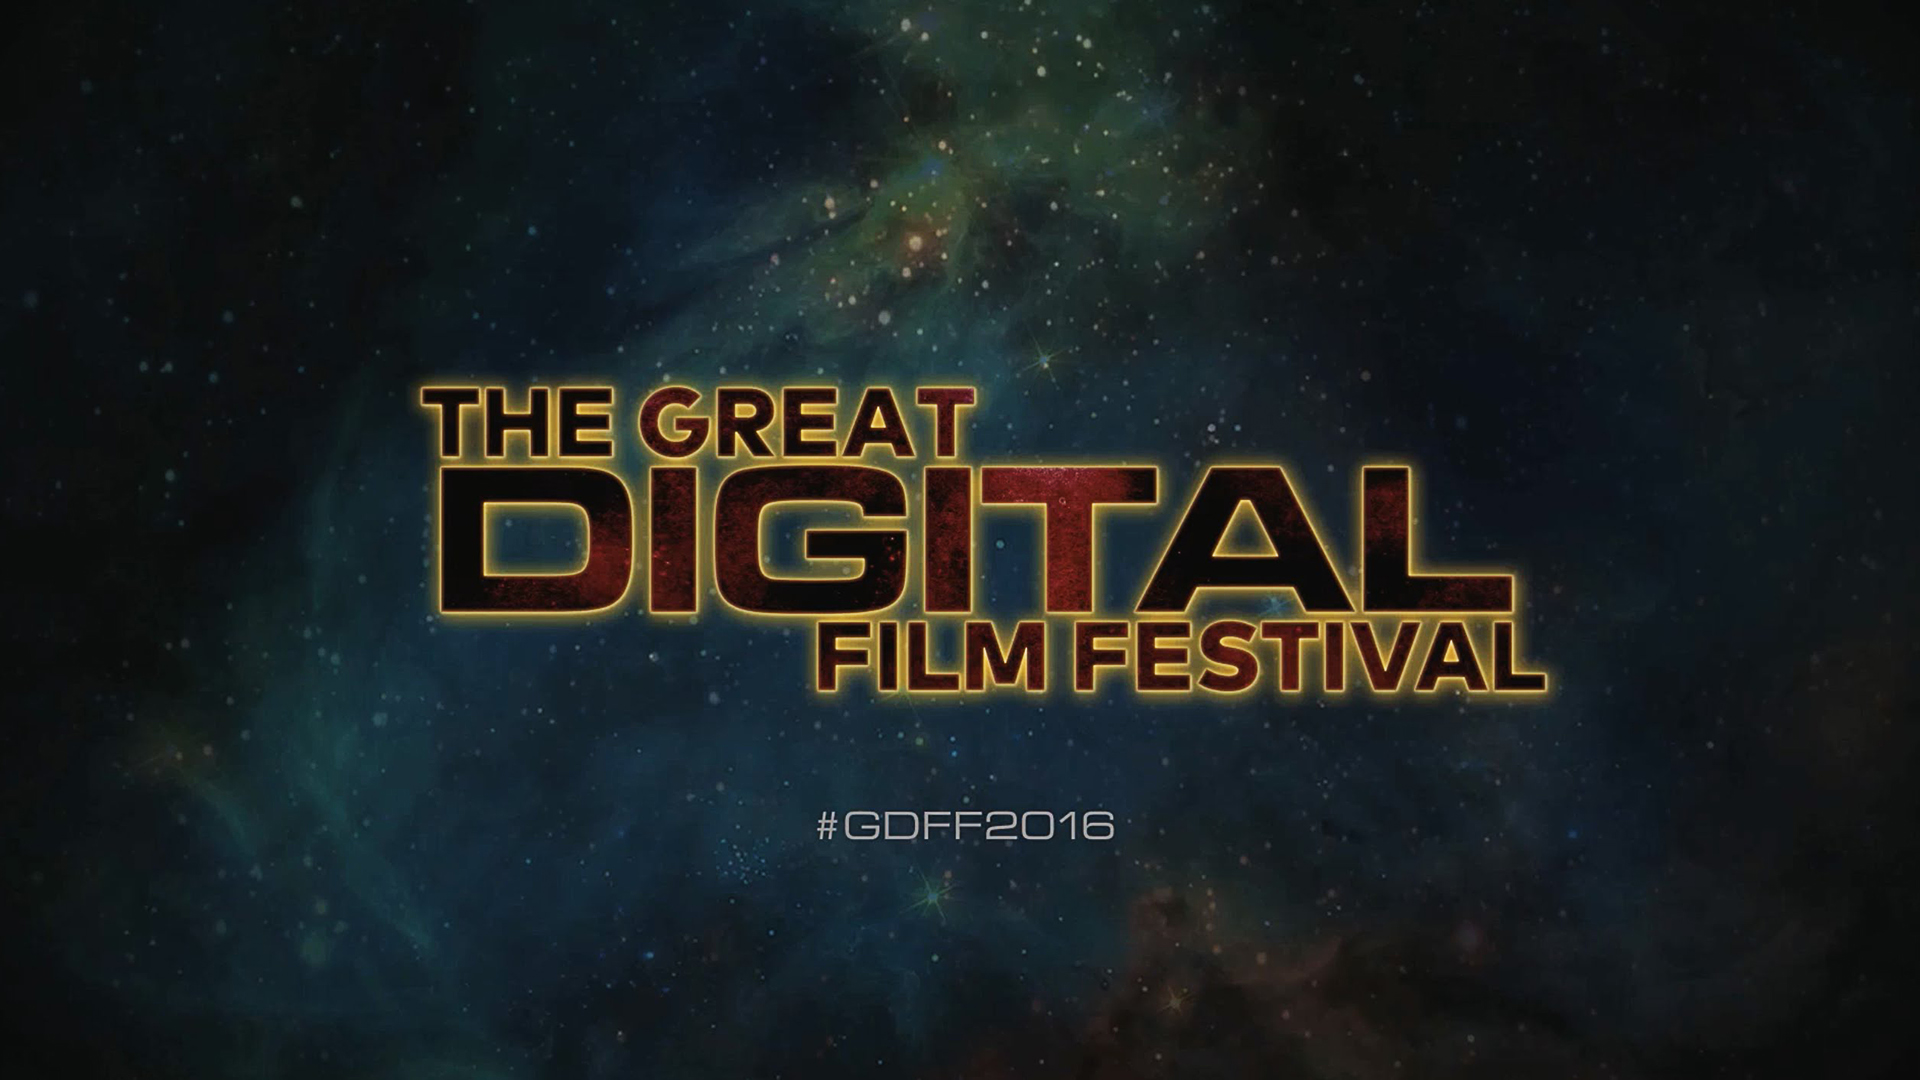 Great Digital Film Festival